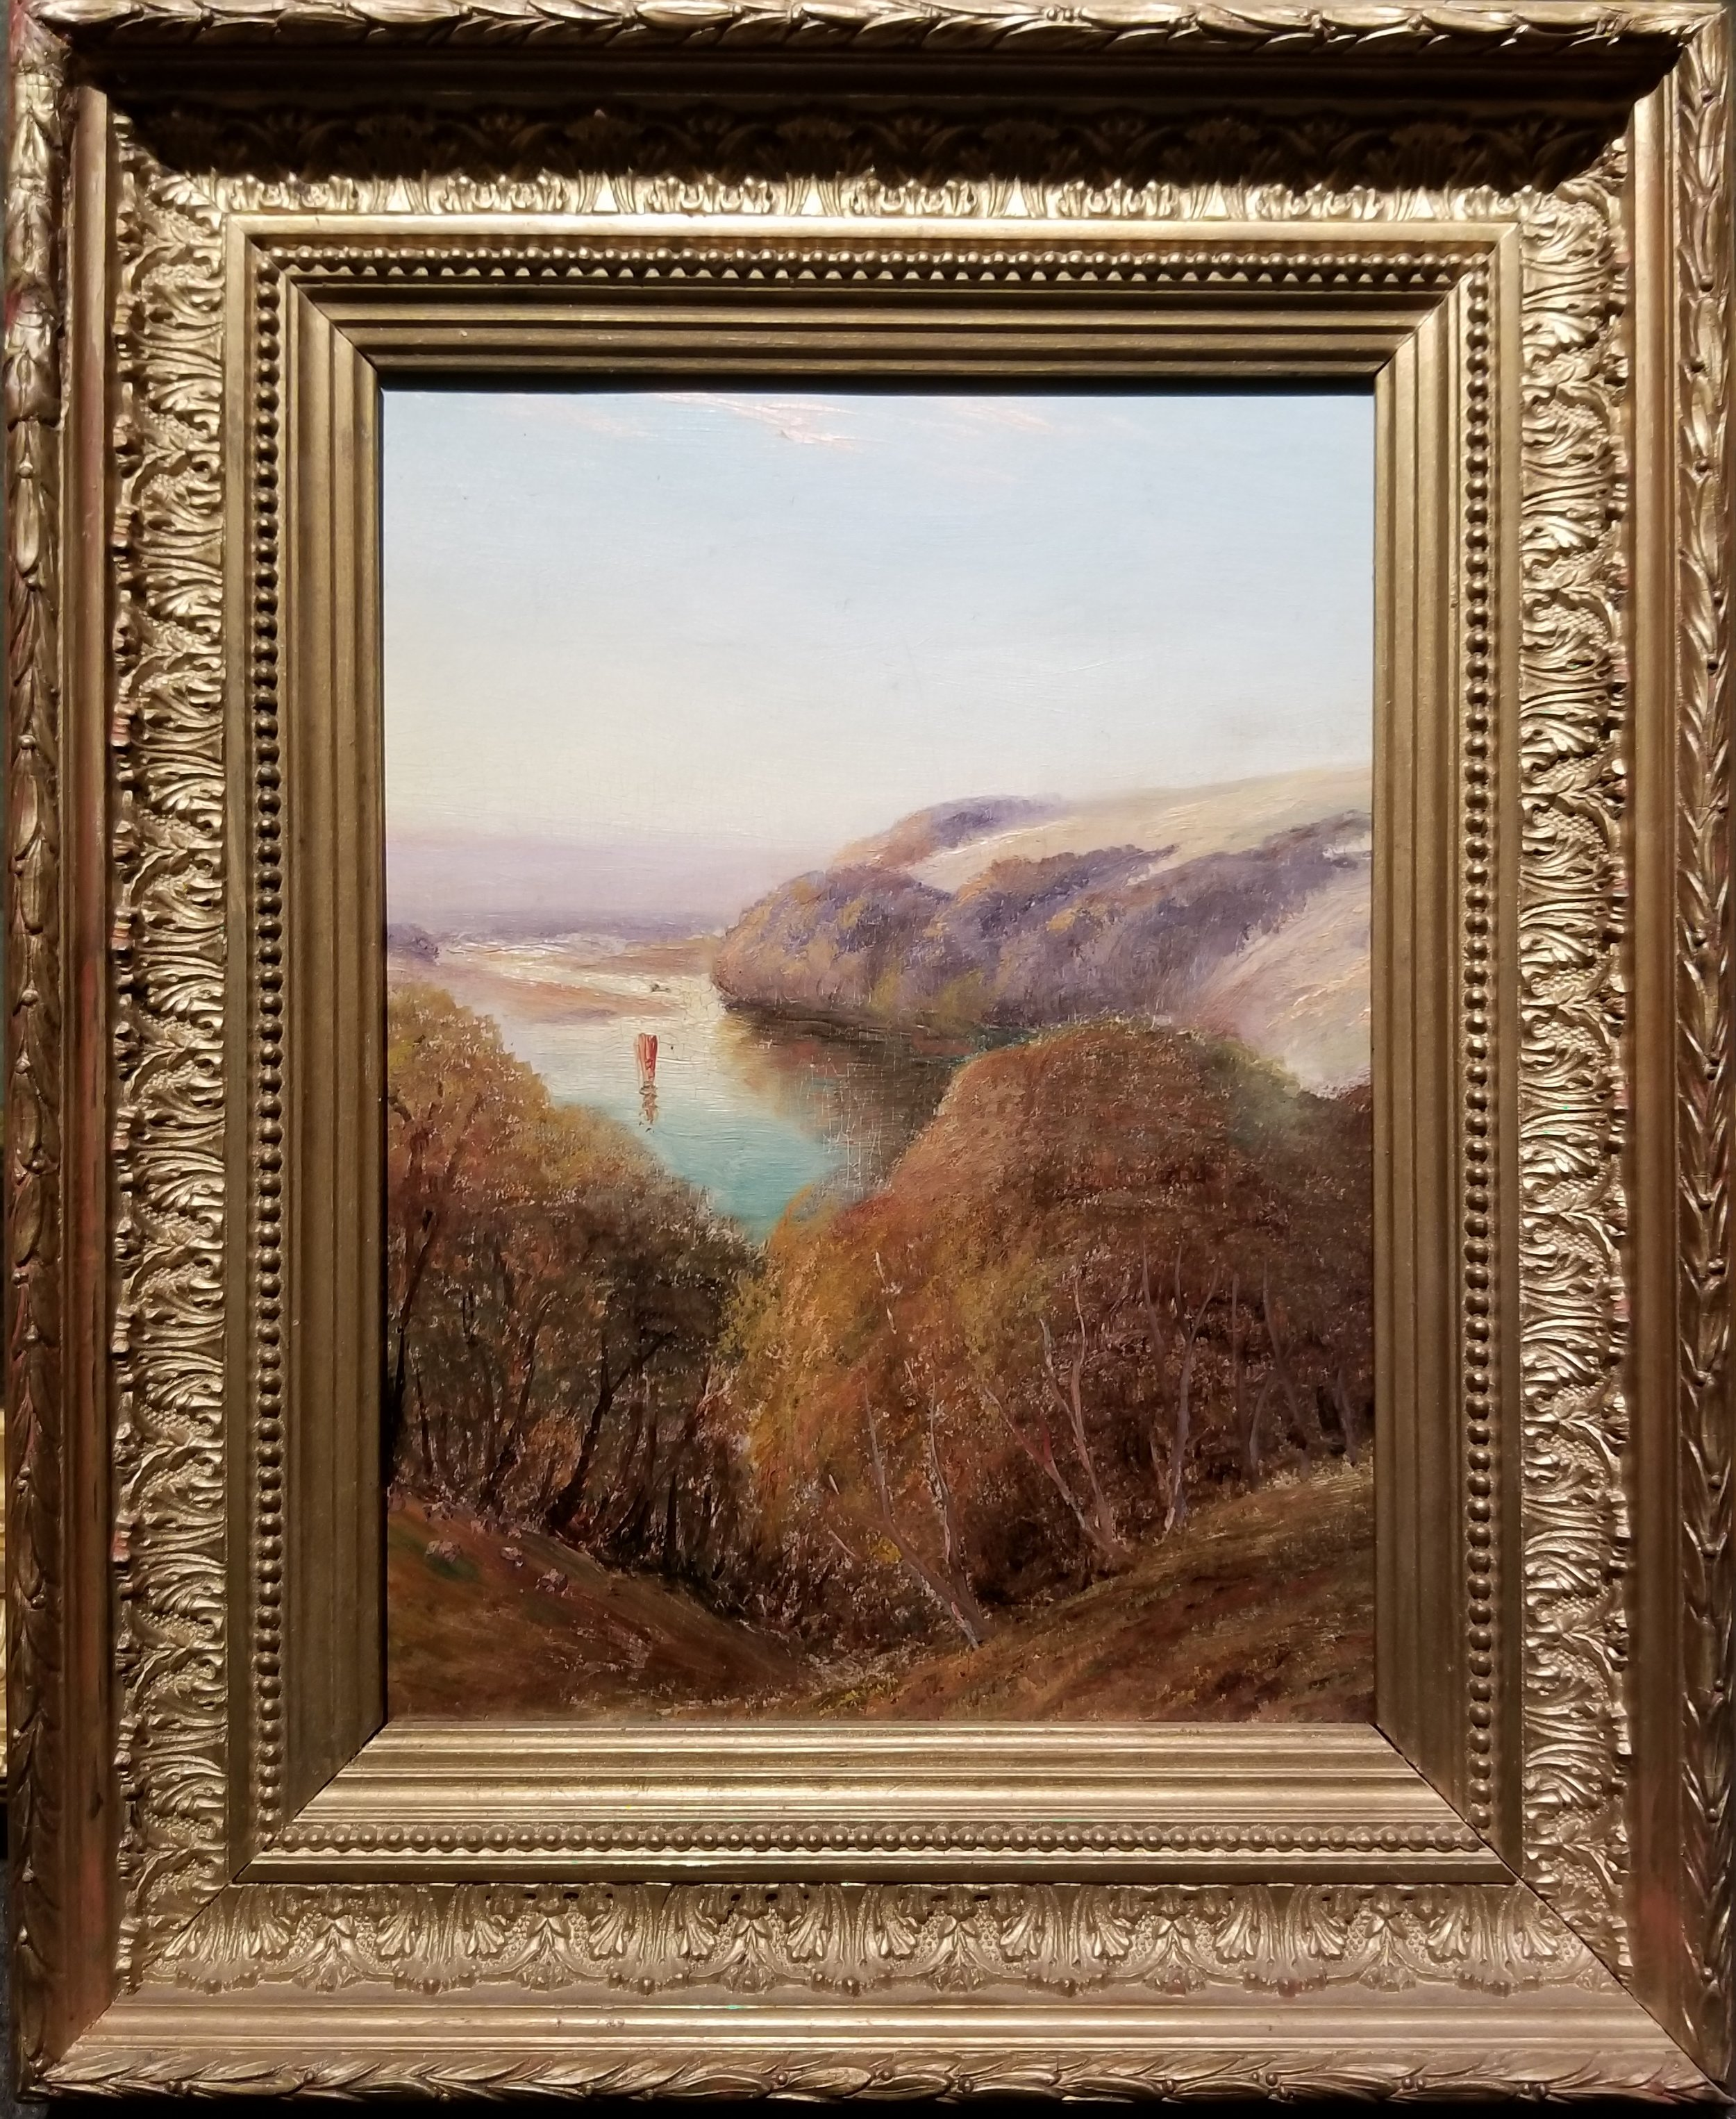 """Antique Hudson River School Painting, Unsigned / Antique Frame    9 3/4"""" x 7 1/2"""" / 13 3/4"""" x 11 1/2"""" Overall    $1,500 - 50% = $750"""